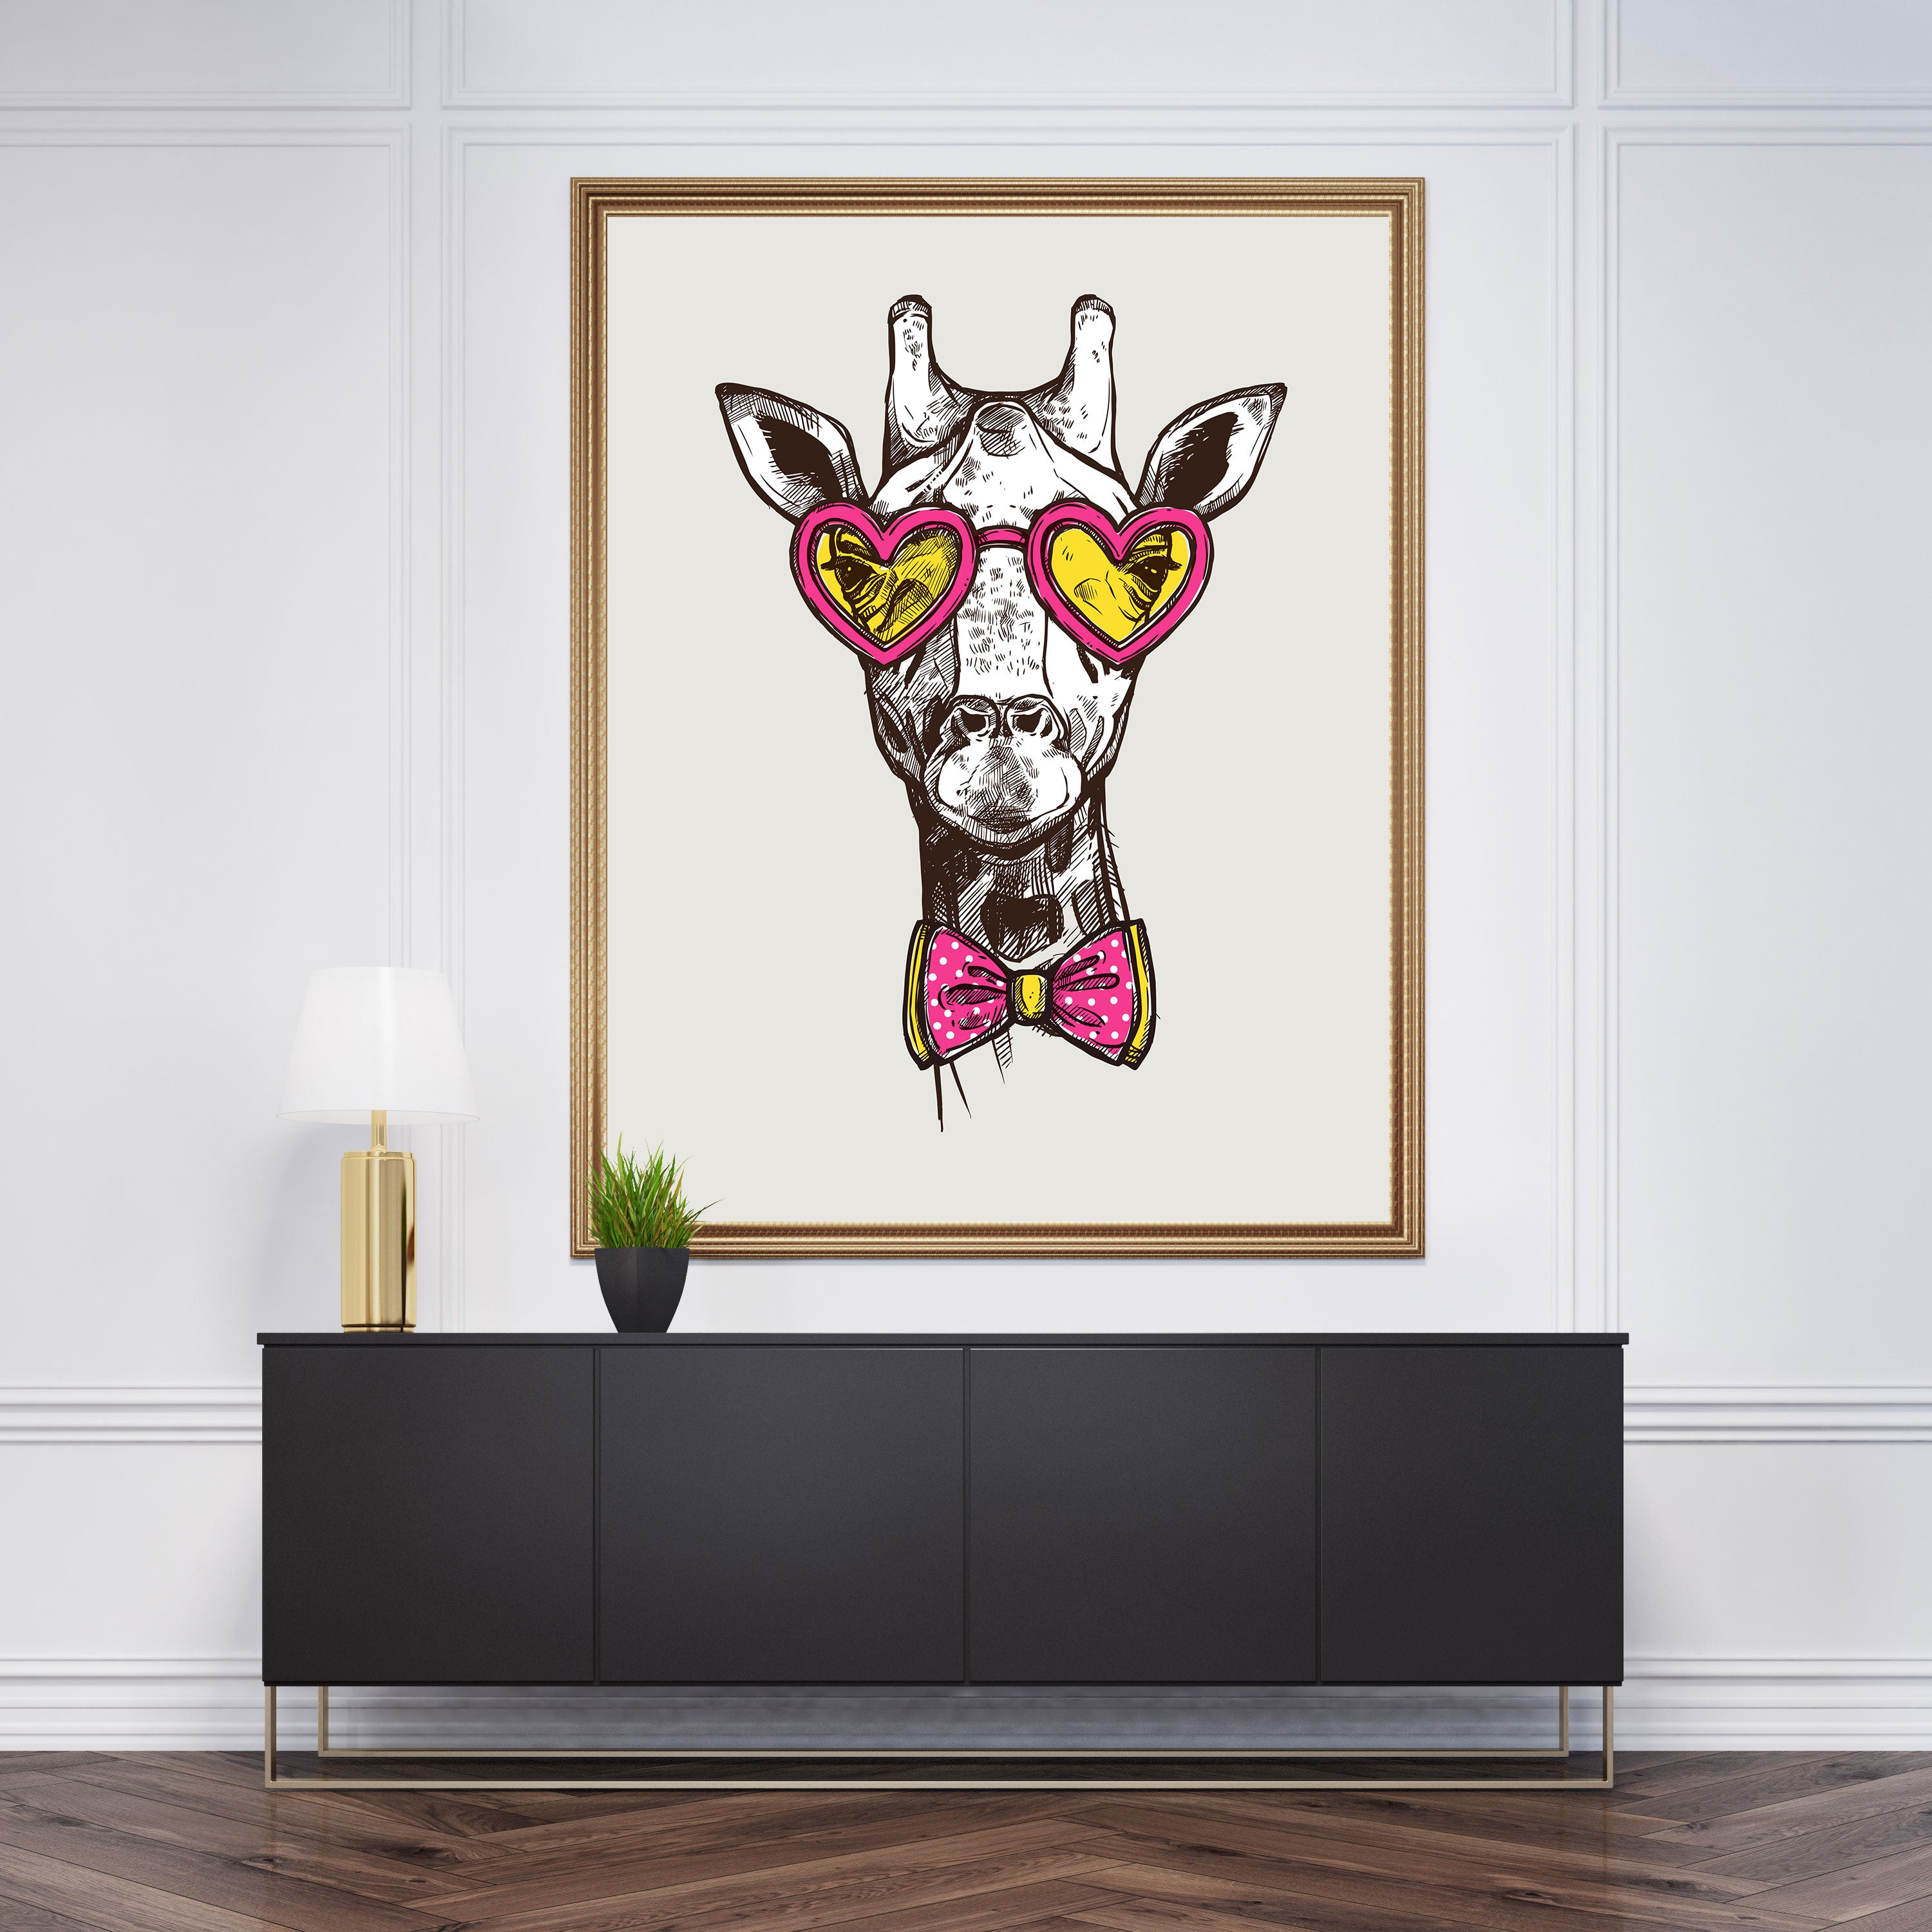 Sketch wall art decor with a cool giraffe with heart sunglasses and bow tie, on light grey background